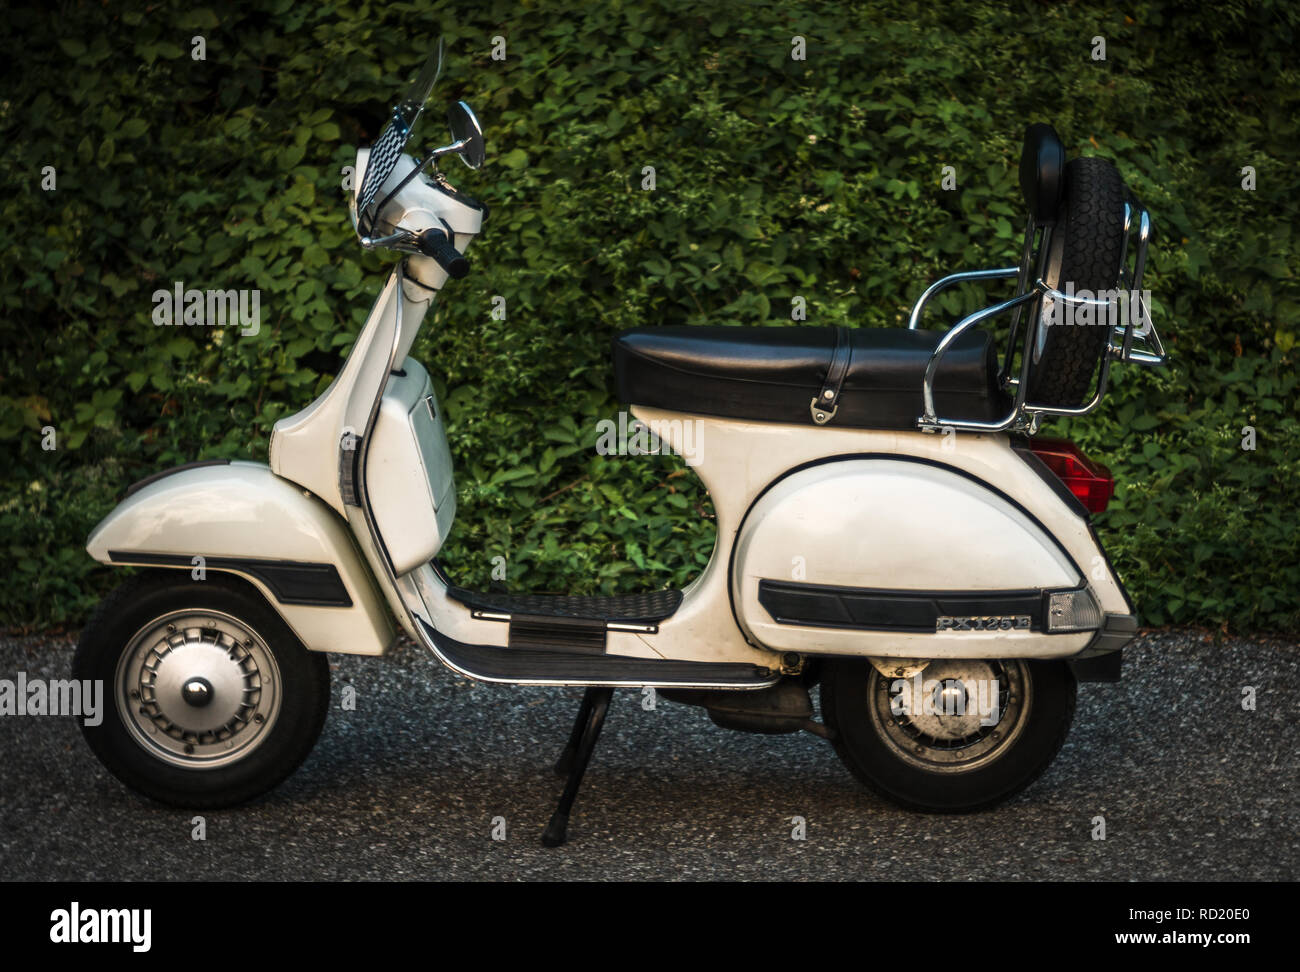 vespa 125 stock photos vespa 125 stock images alamy. Black Bedroom Furniture Sets. Home Design Ideas